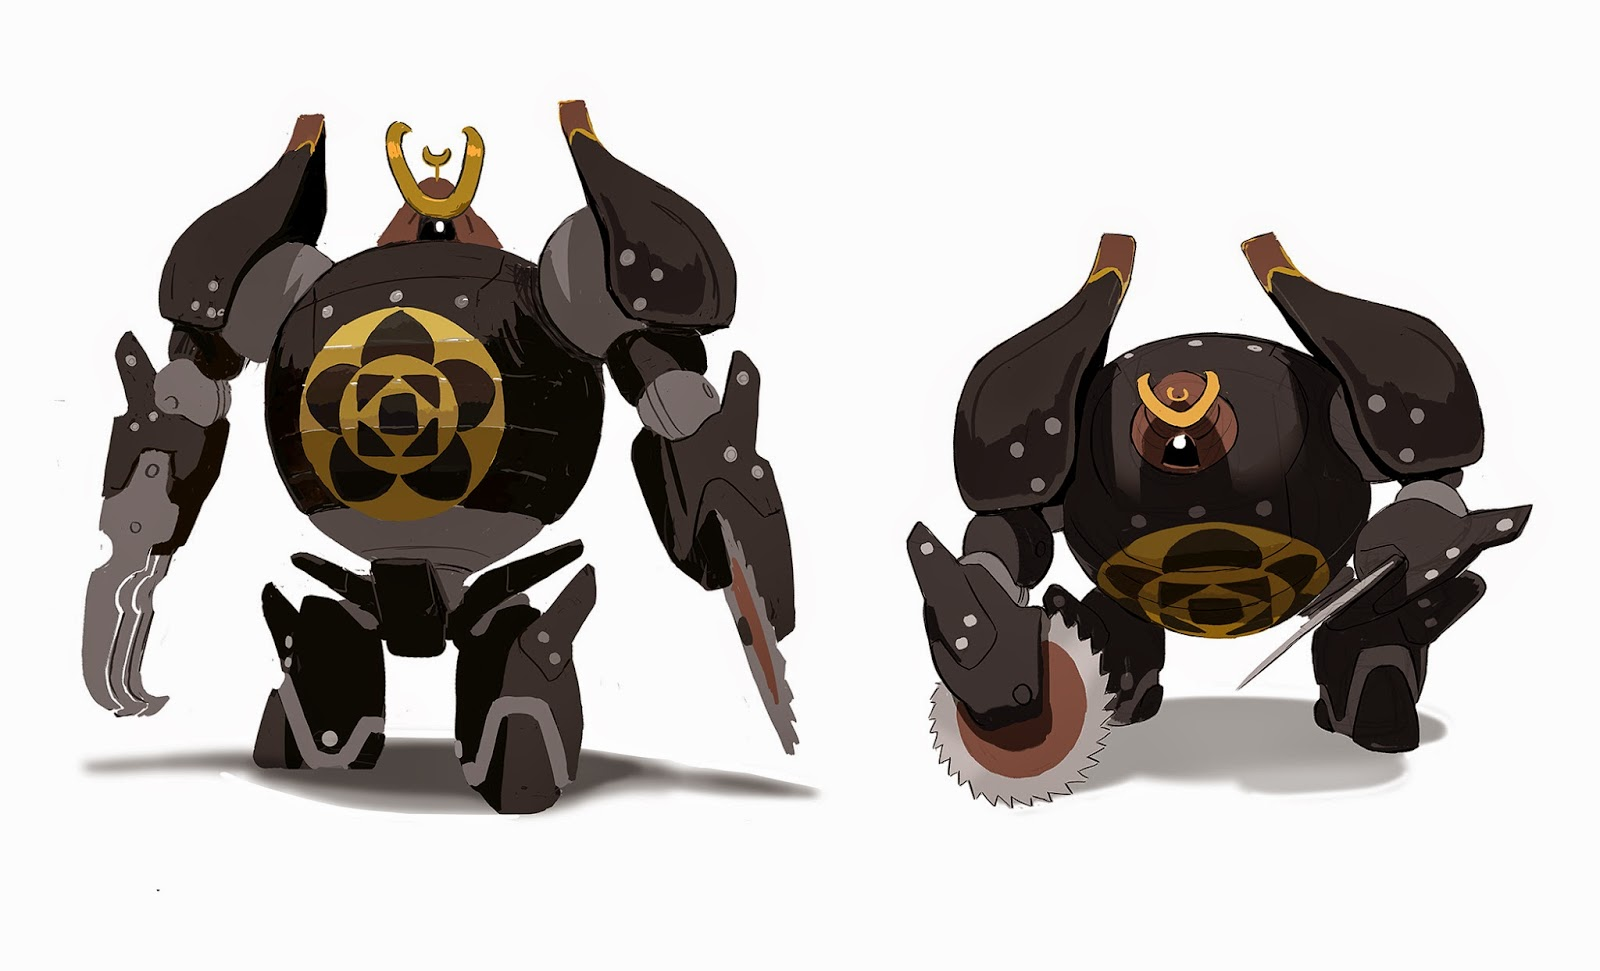 1600x971 The Art Of Kevin Nelson Big Hero 6 Robot Fighter Designs (Also